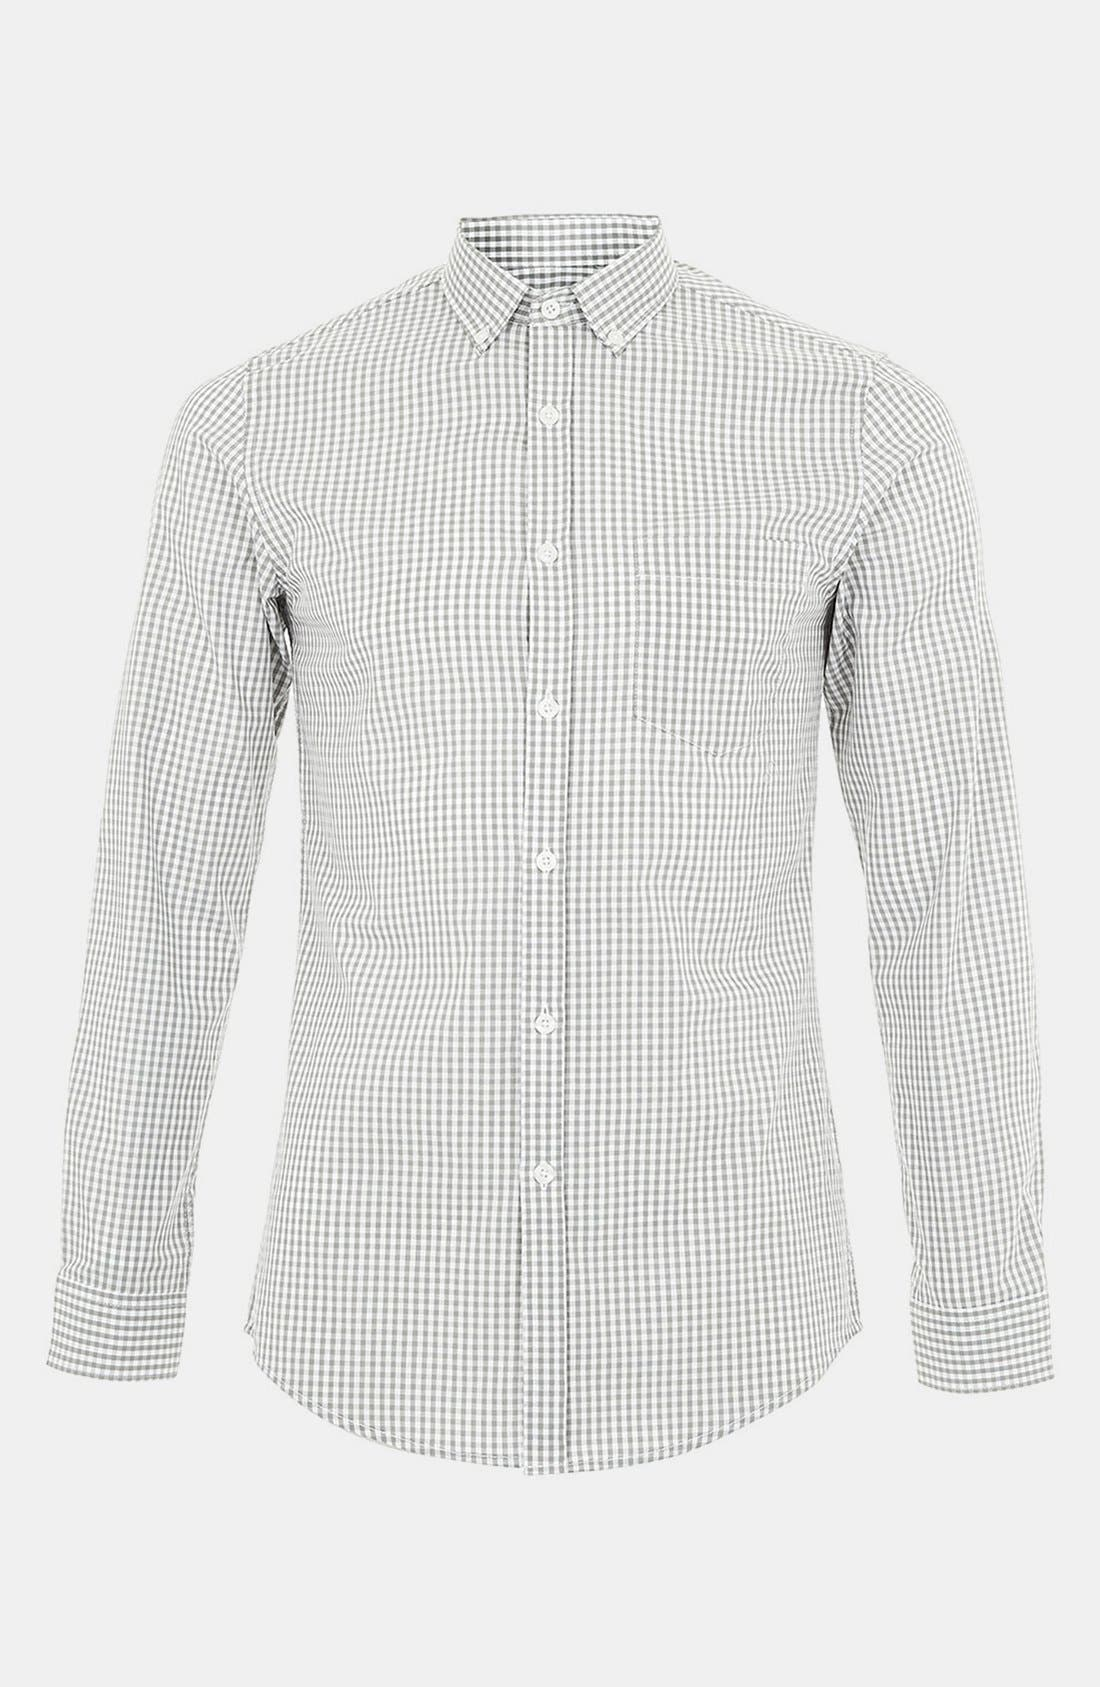 Alternate Image 1 Selected - Topman Gingham Check Shirt